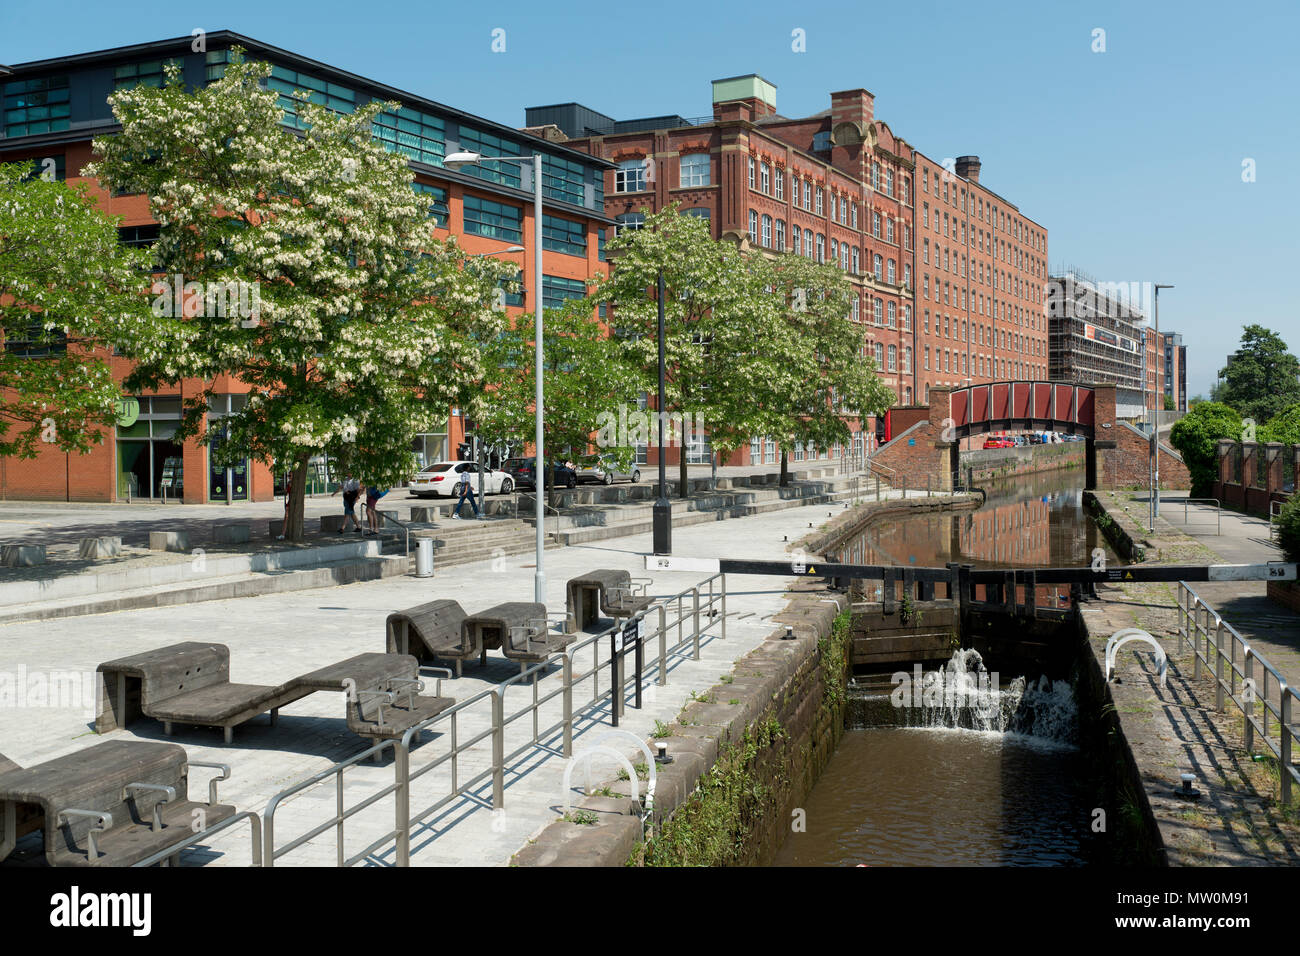 The Kitty Footbridge passing over the Rochdale Canal in the Ancoats area of Manchester, UK. Stock Photo